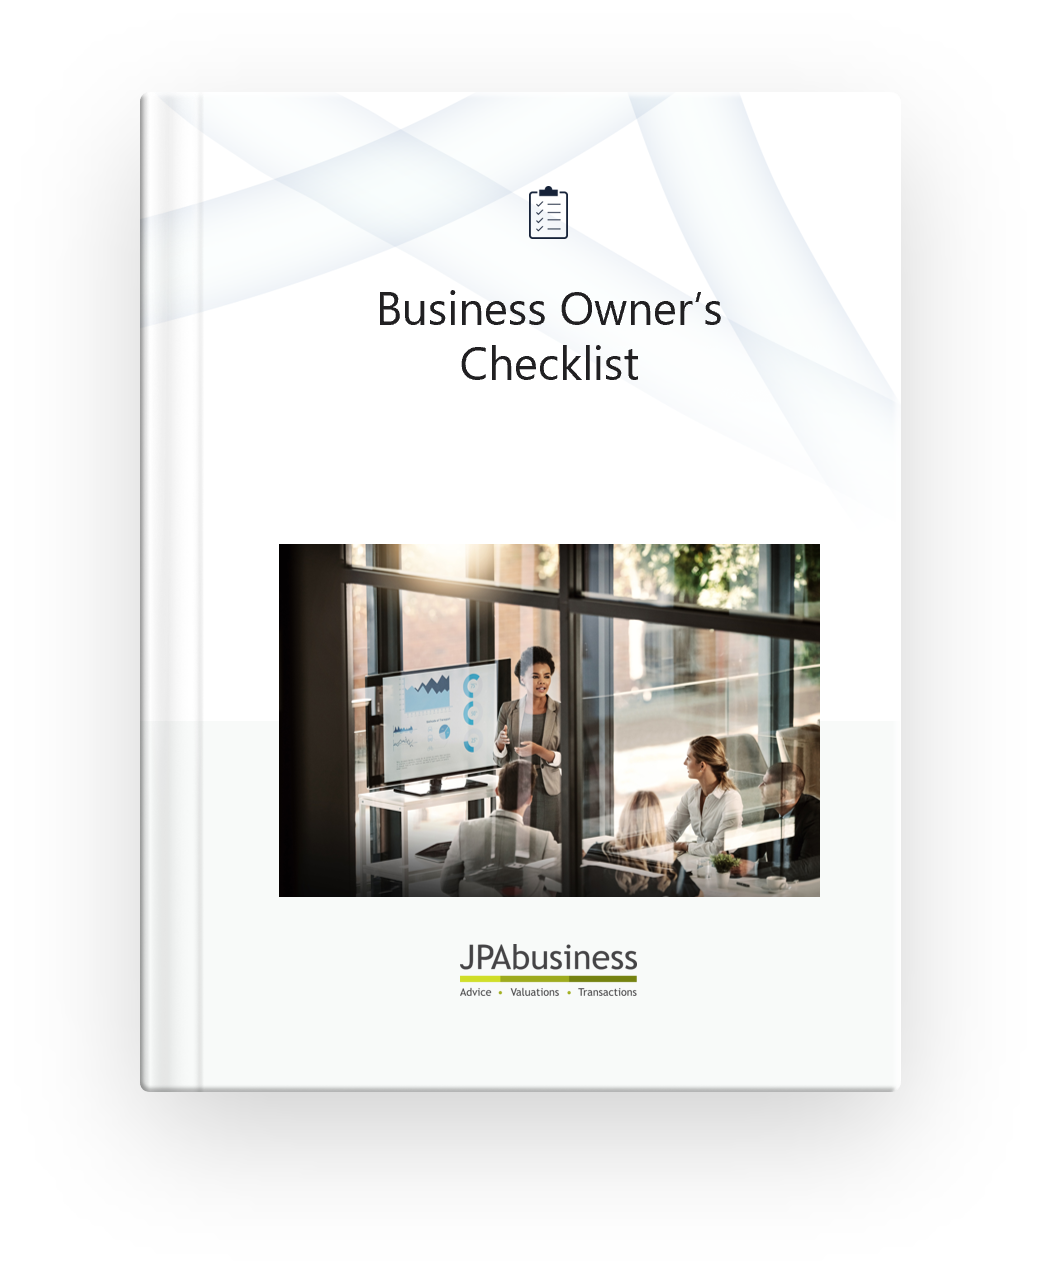 The_Business_Owners_Checklist